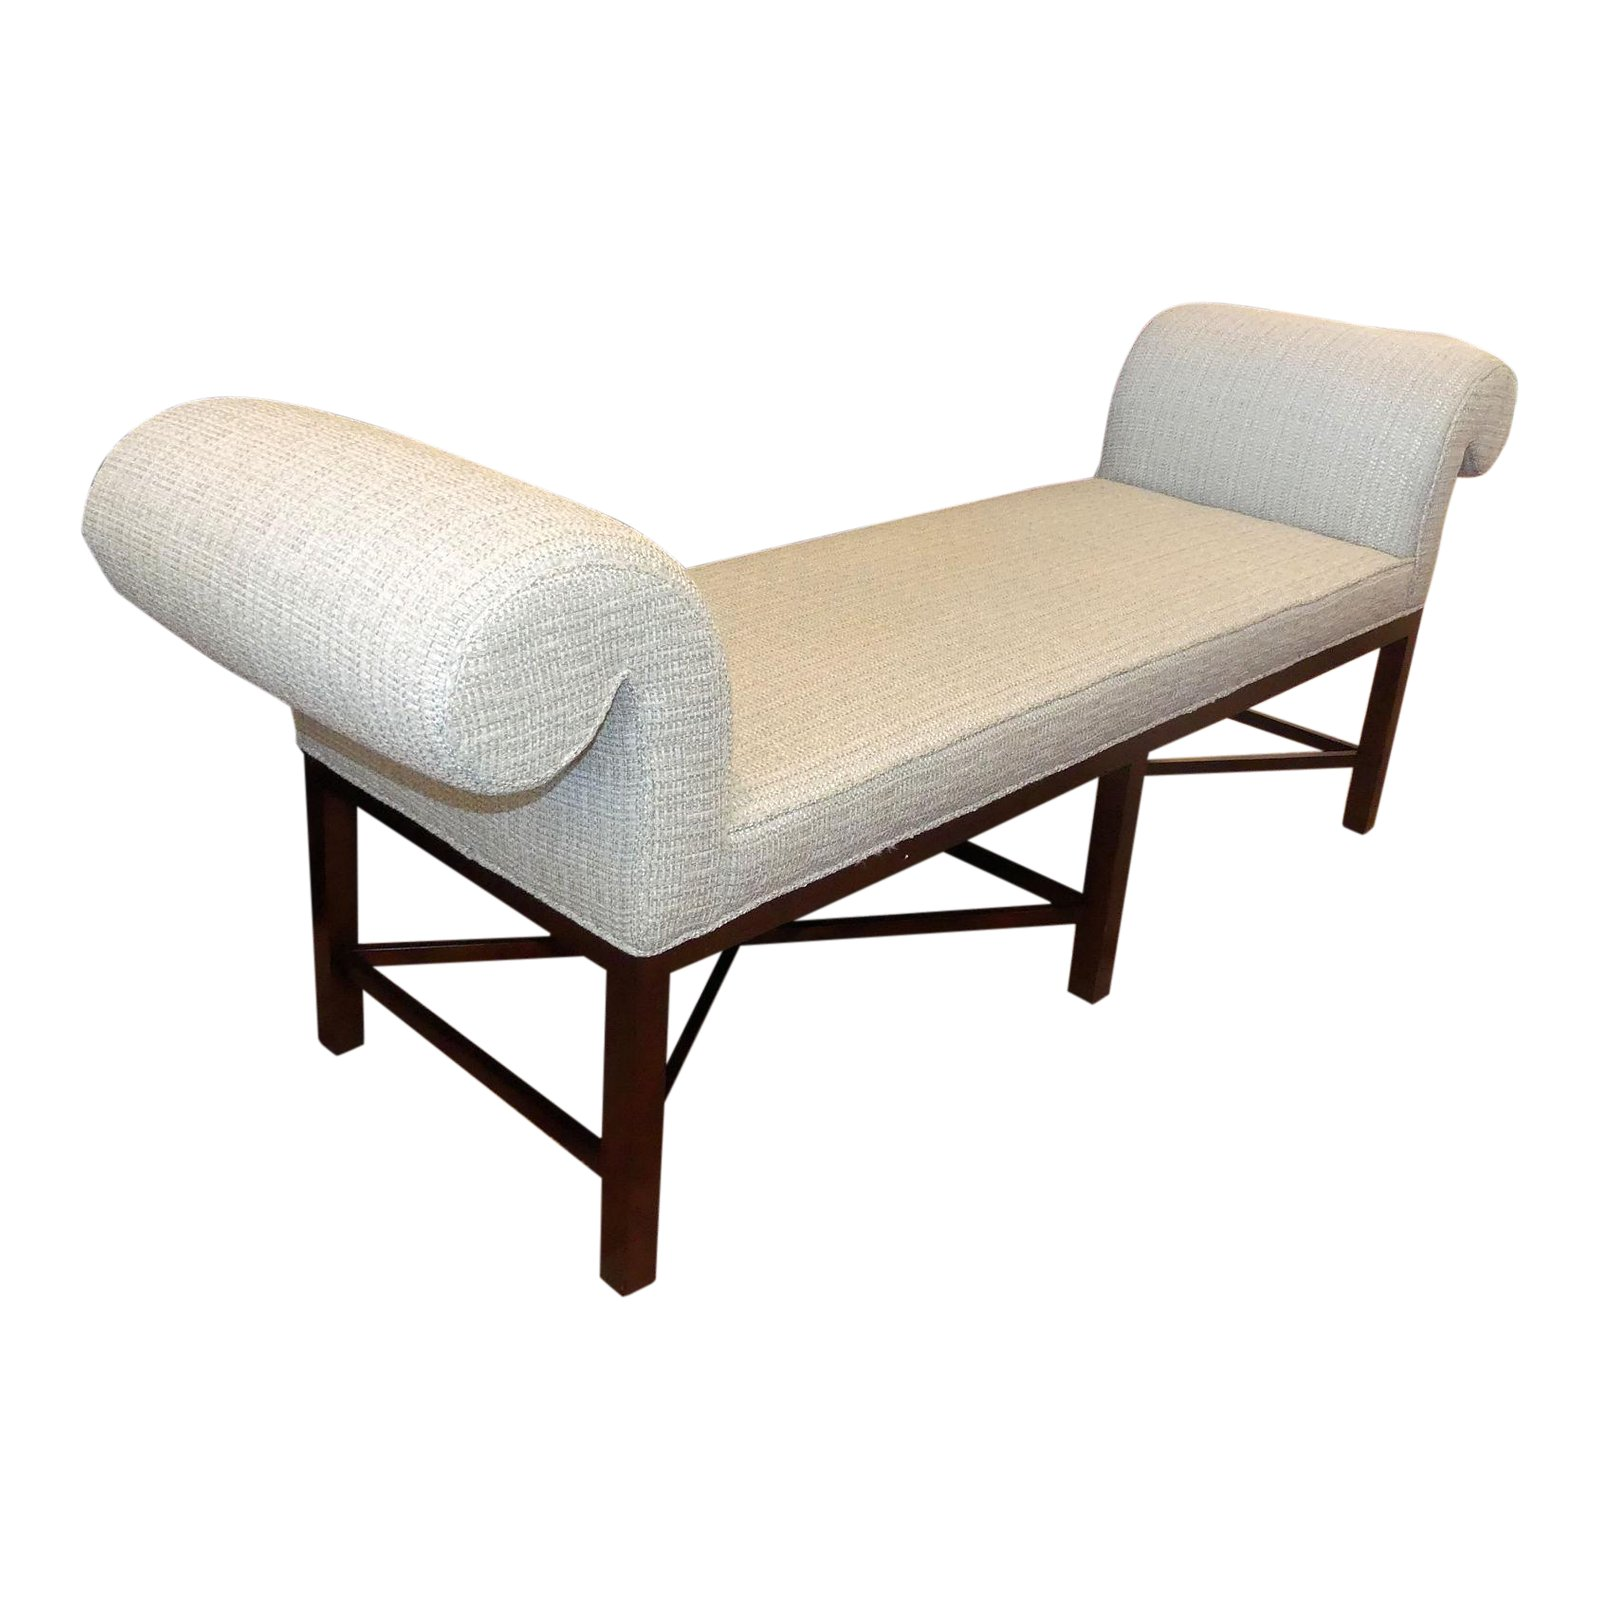 Baker Furniture Contemporary Rolled Arm Bench  $1,149